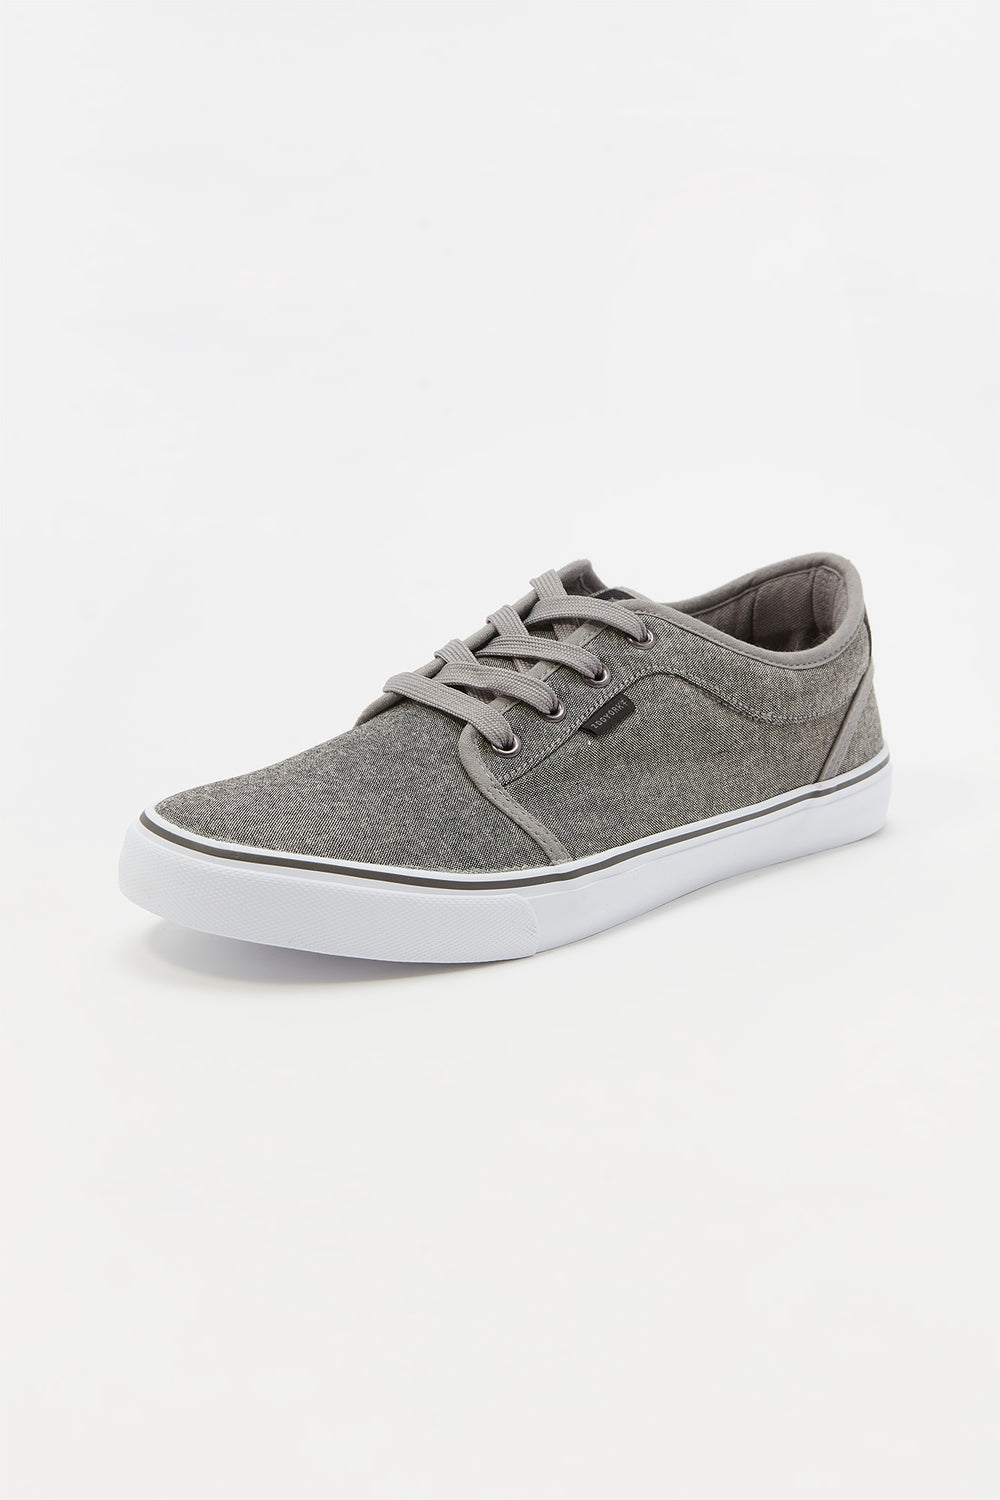 Zoo York Mens Canvas Skate Shoes Heather Grey